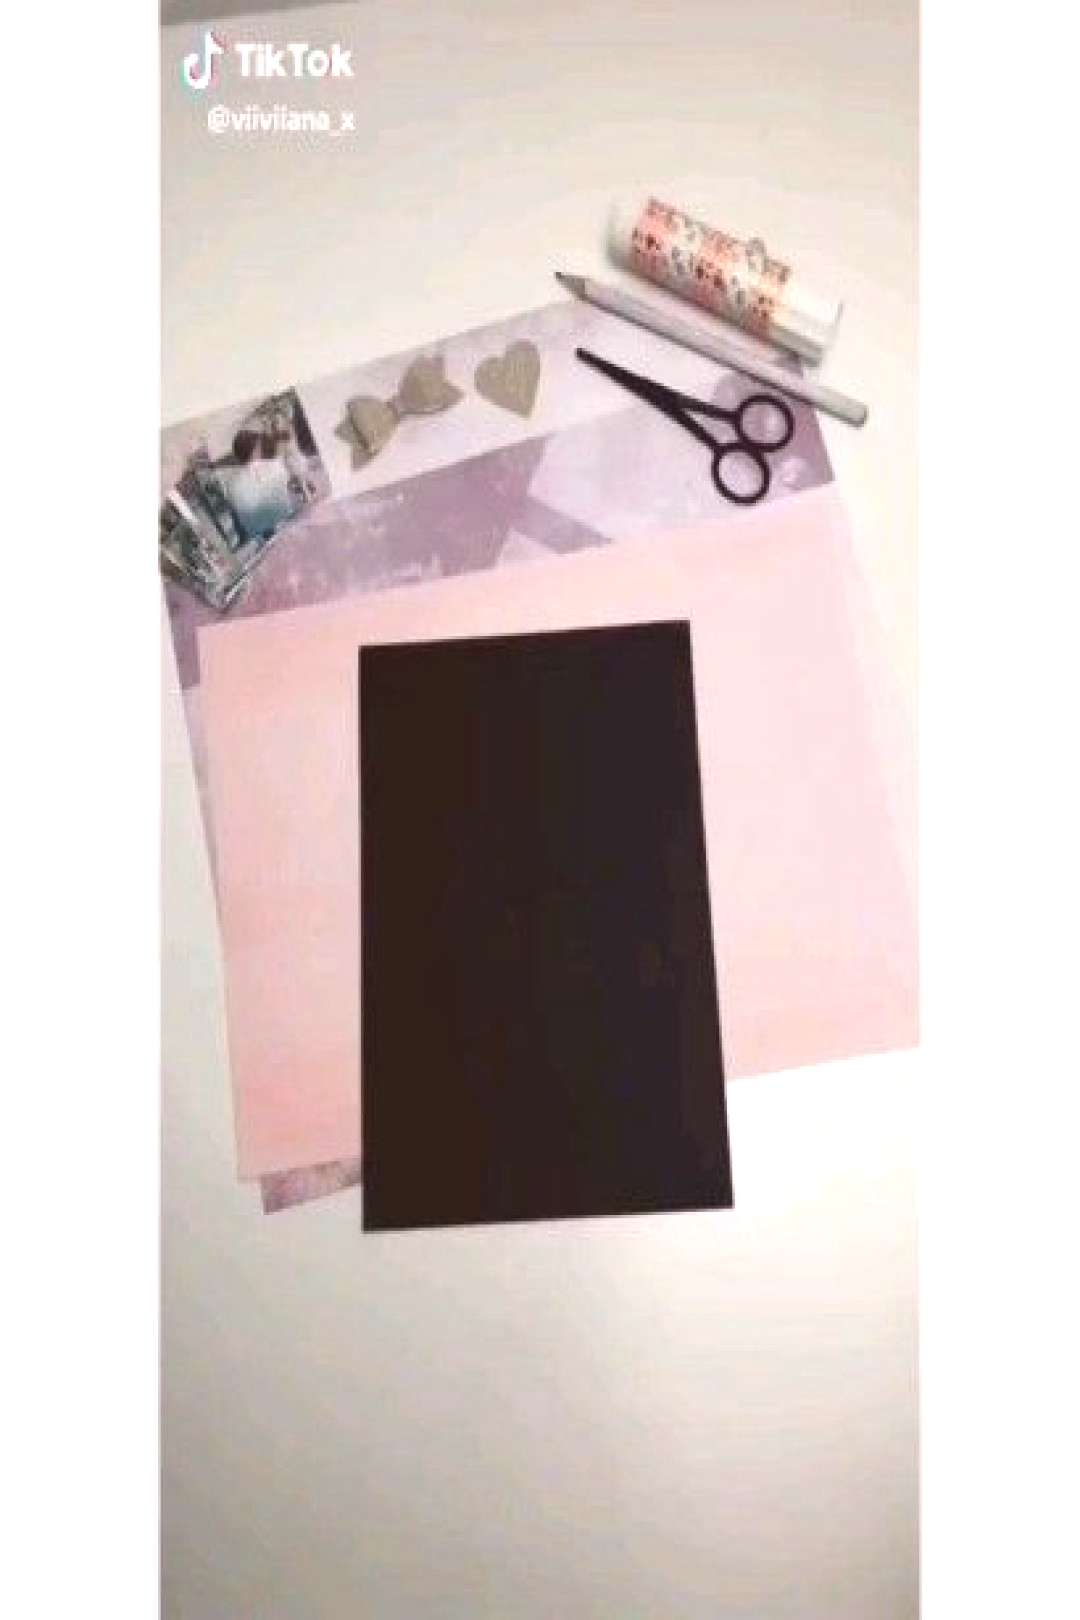 Click link in bio or visit our website at  ? Video by viiviiana_x on TikTok gift birthday Get ou